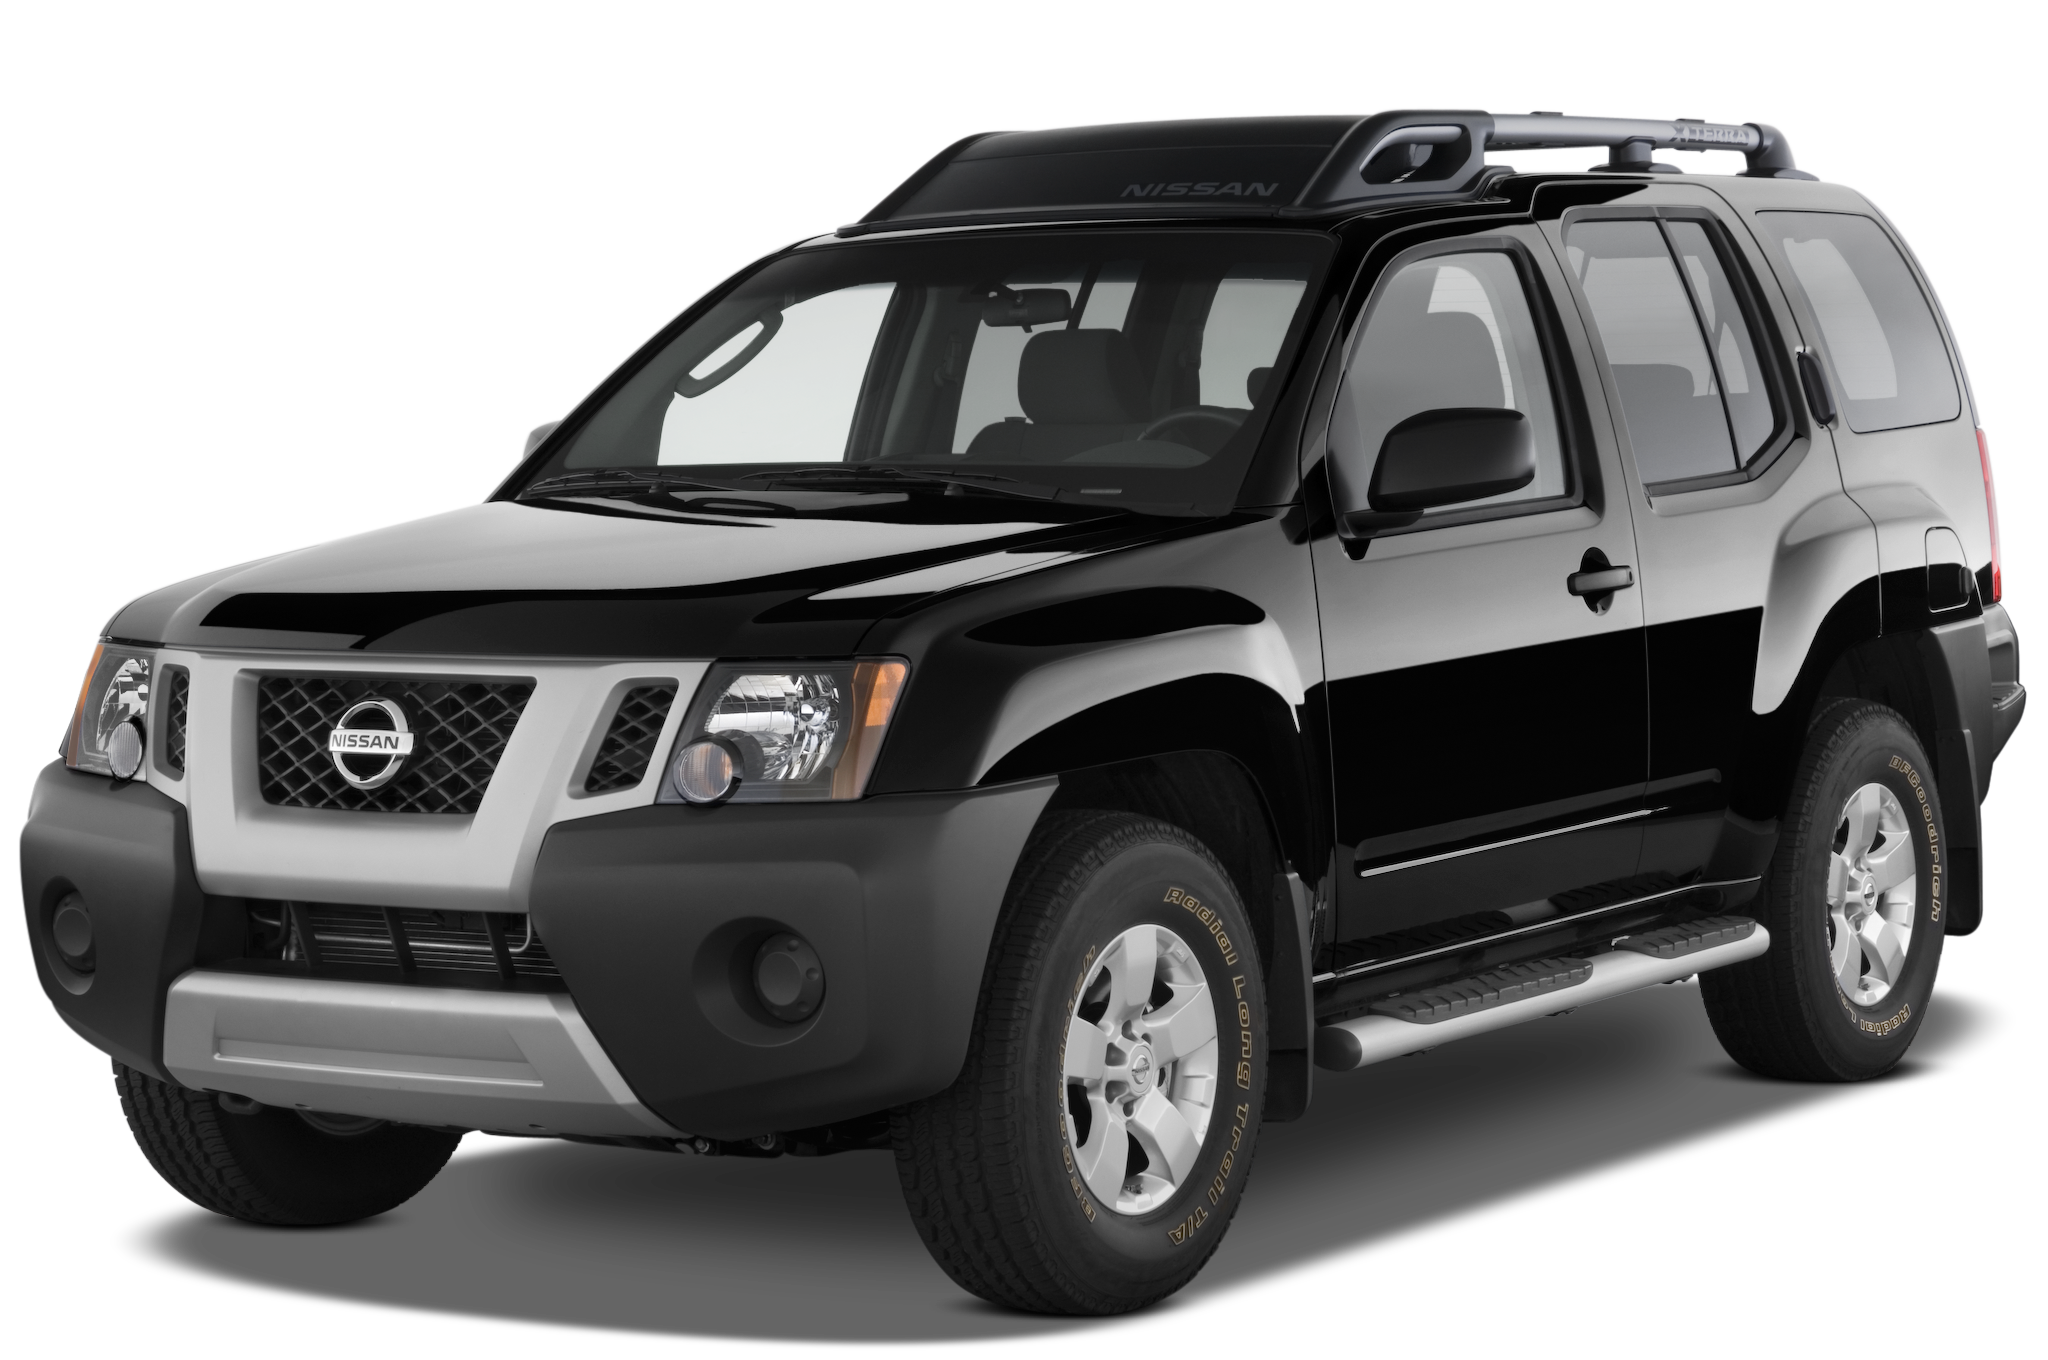 Nissan XTERRA X 4x4 AT 2014 International Price & Overview